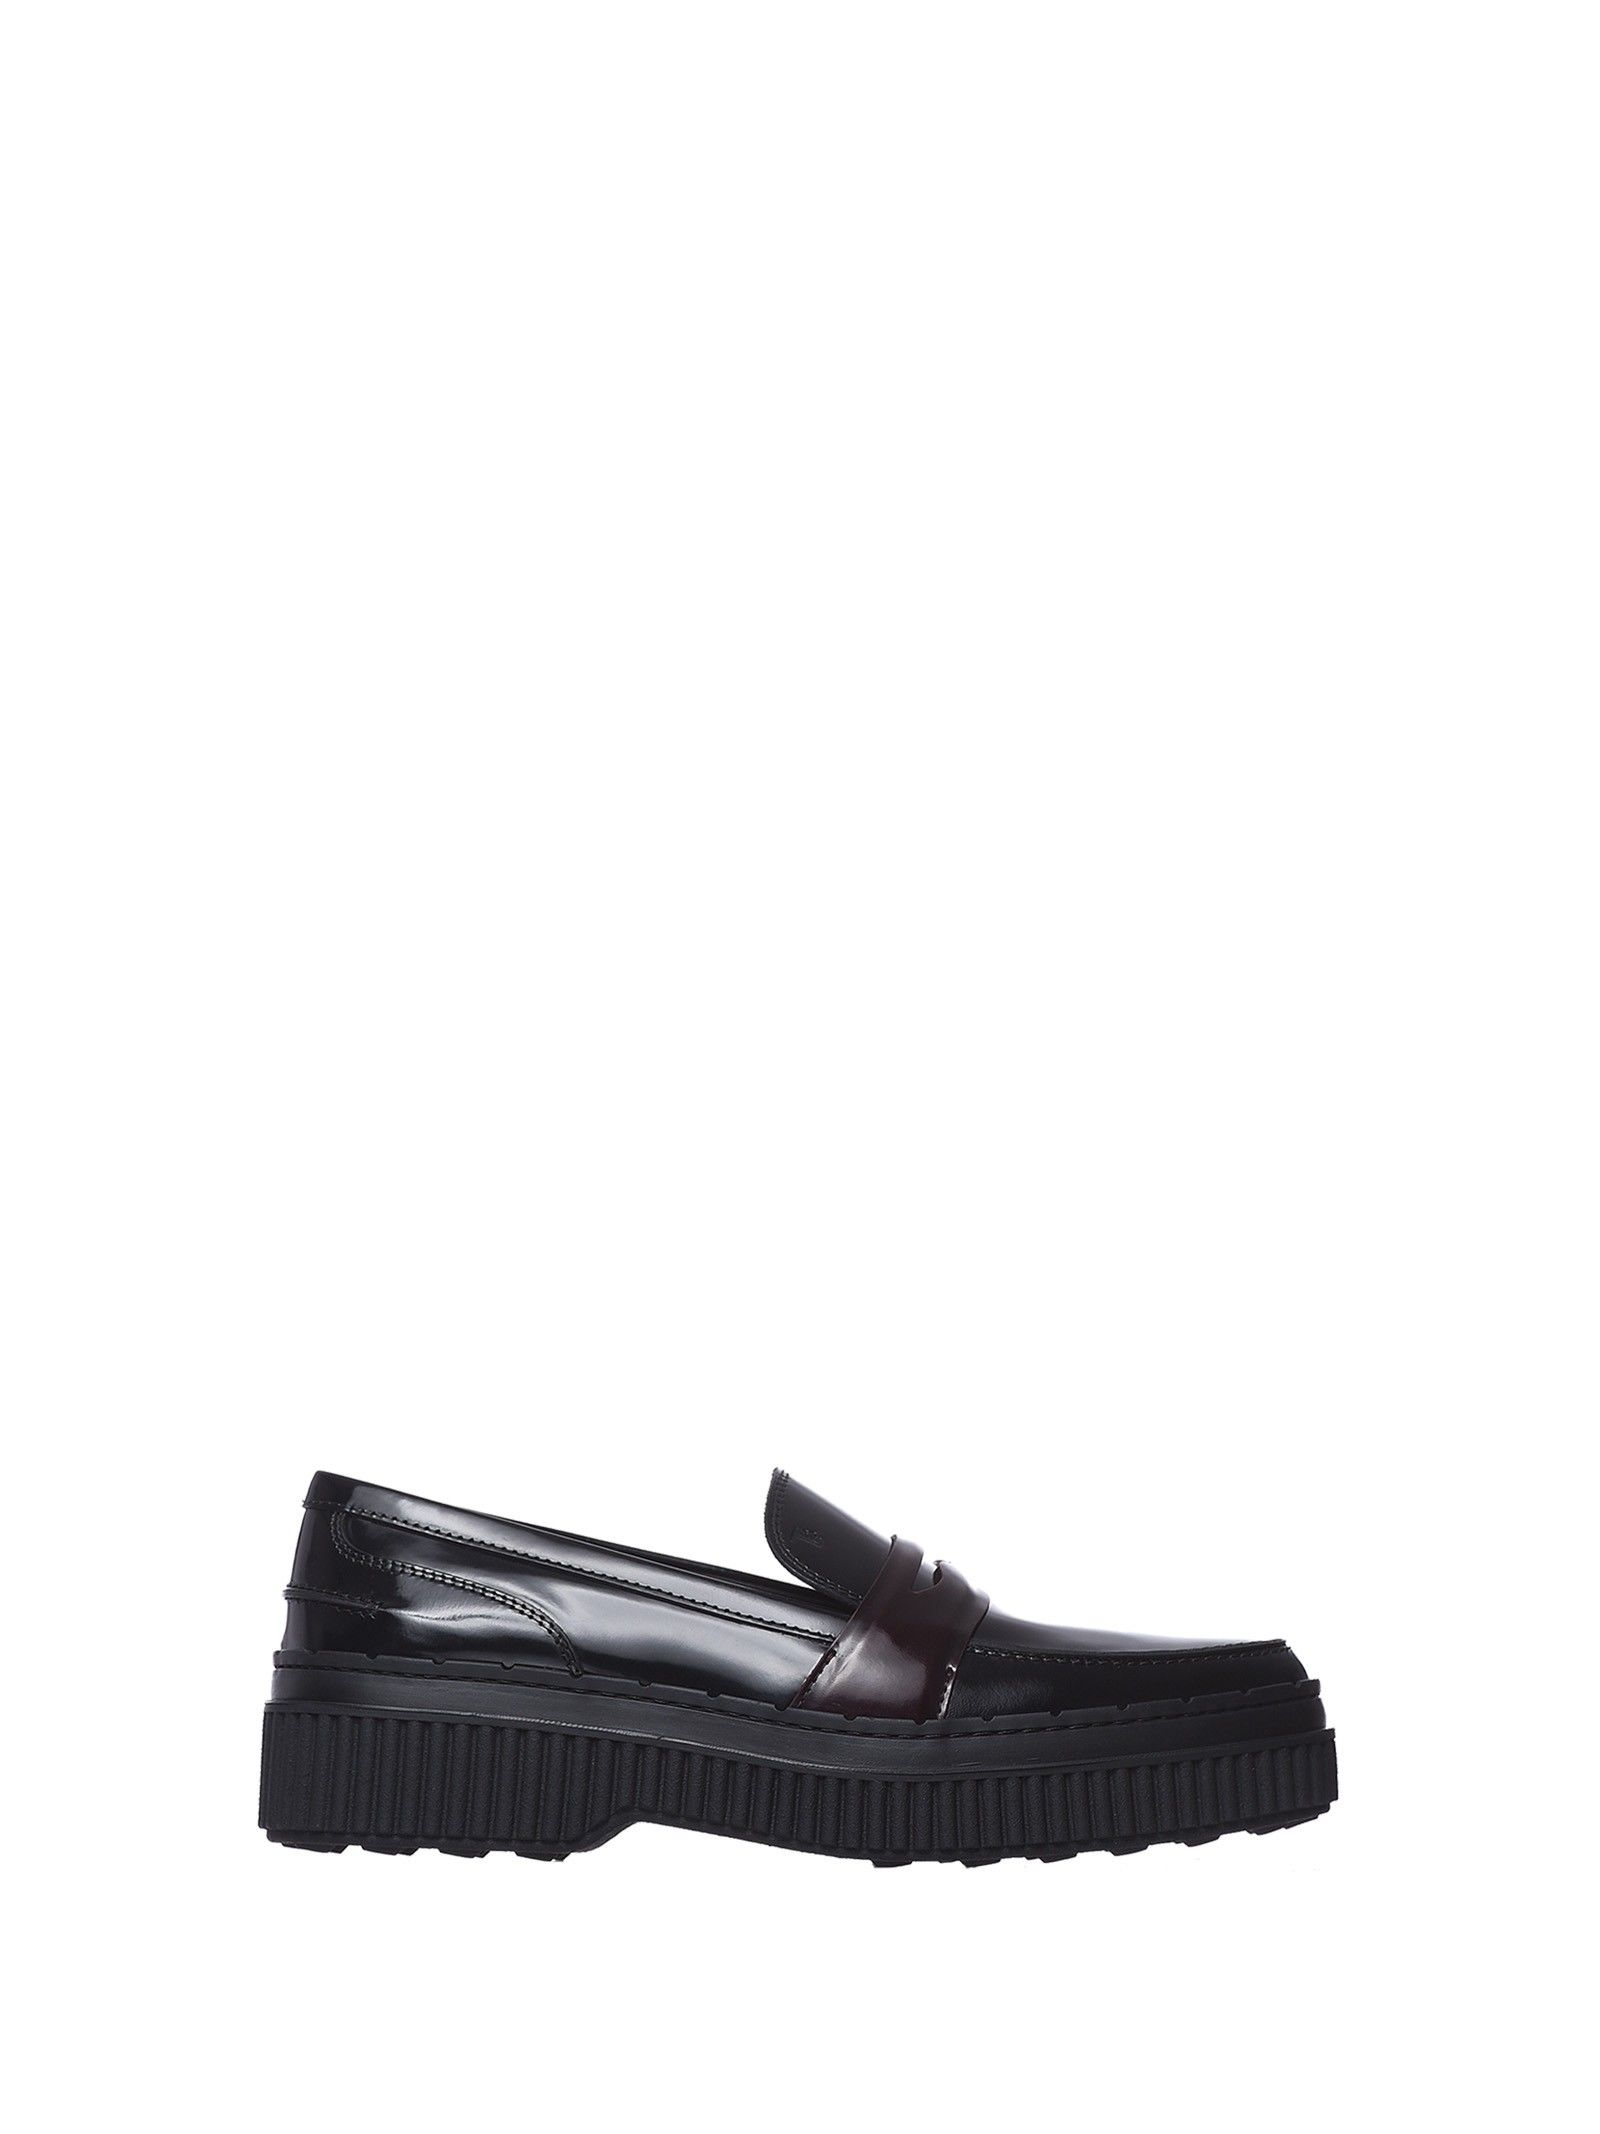 Tods Black Women Loafers